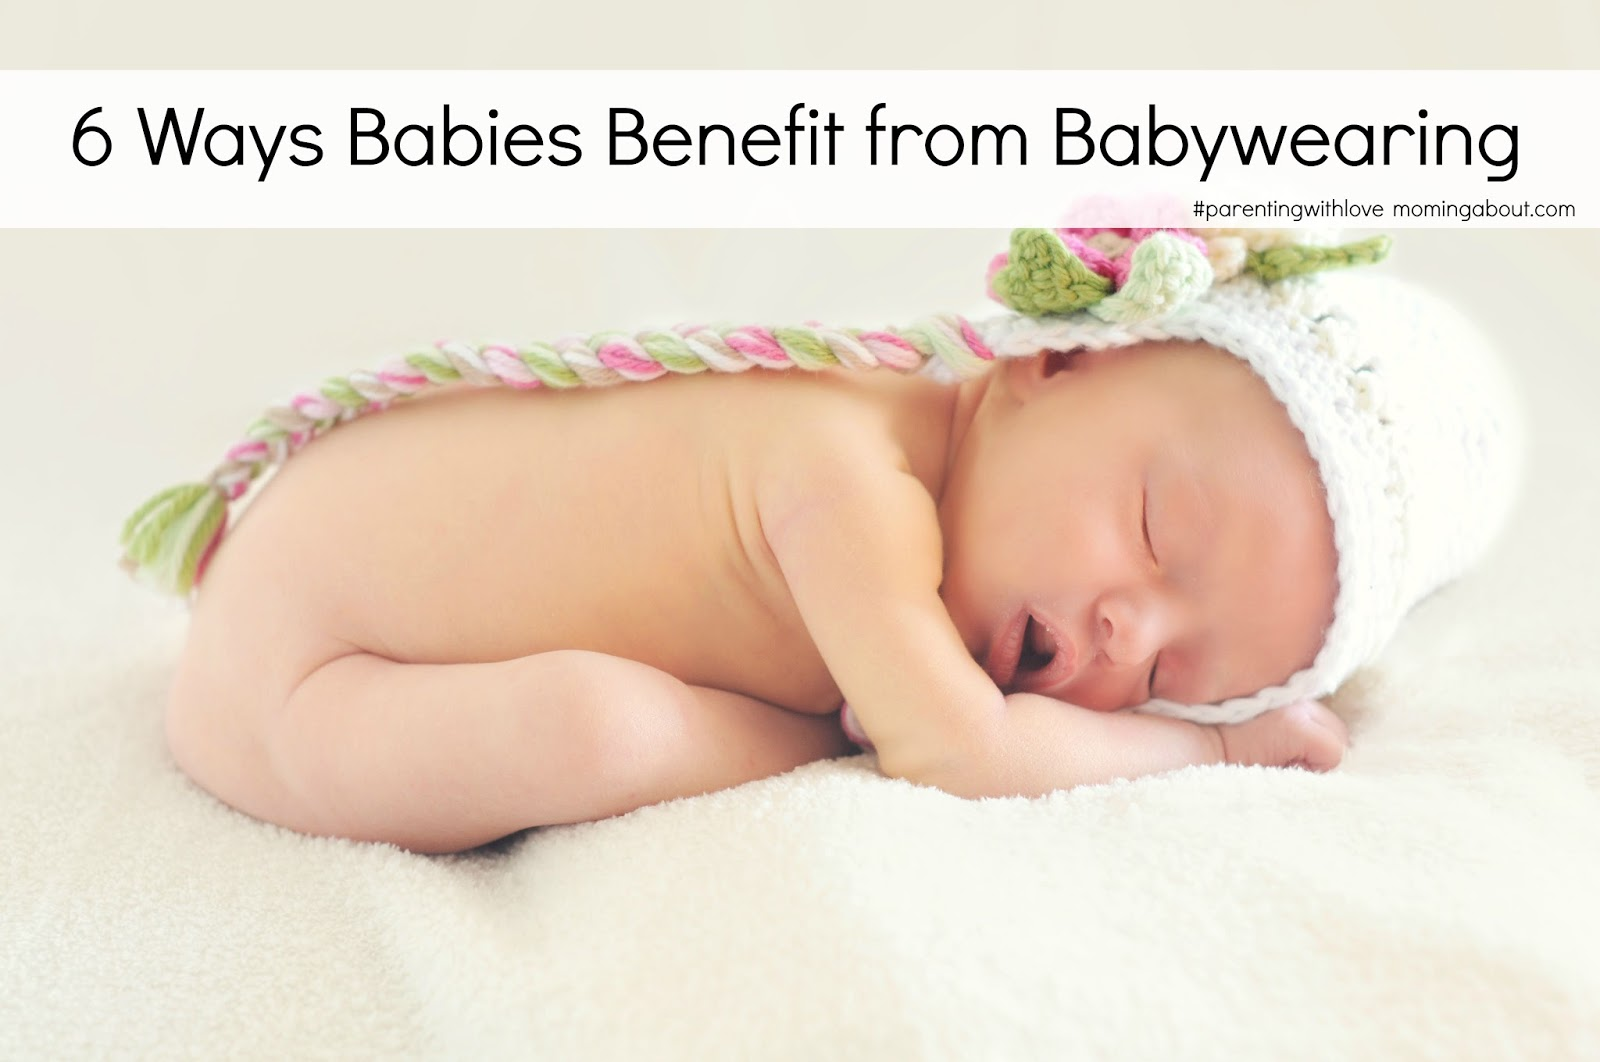 How Babies Benefit from Babywearing